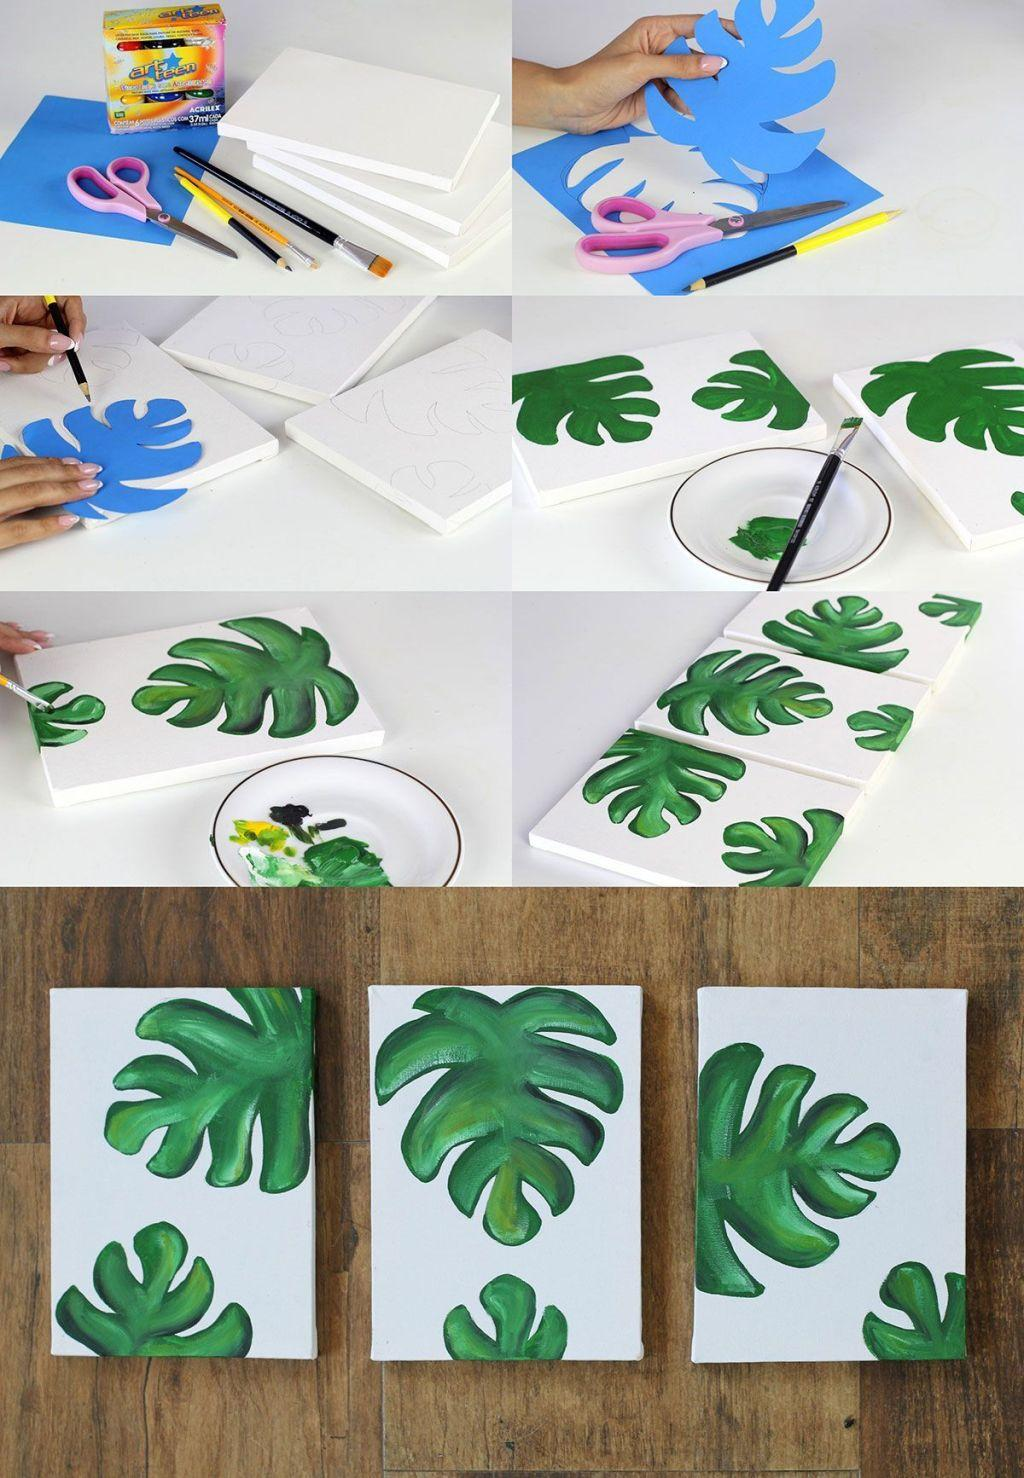 How to make handmade pictures: templates, photos and step-by-step 60